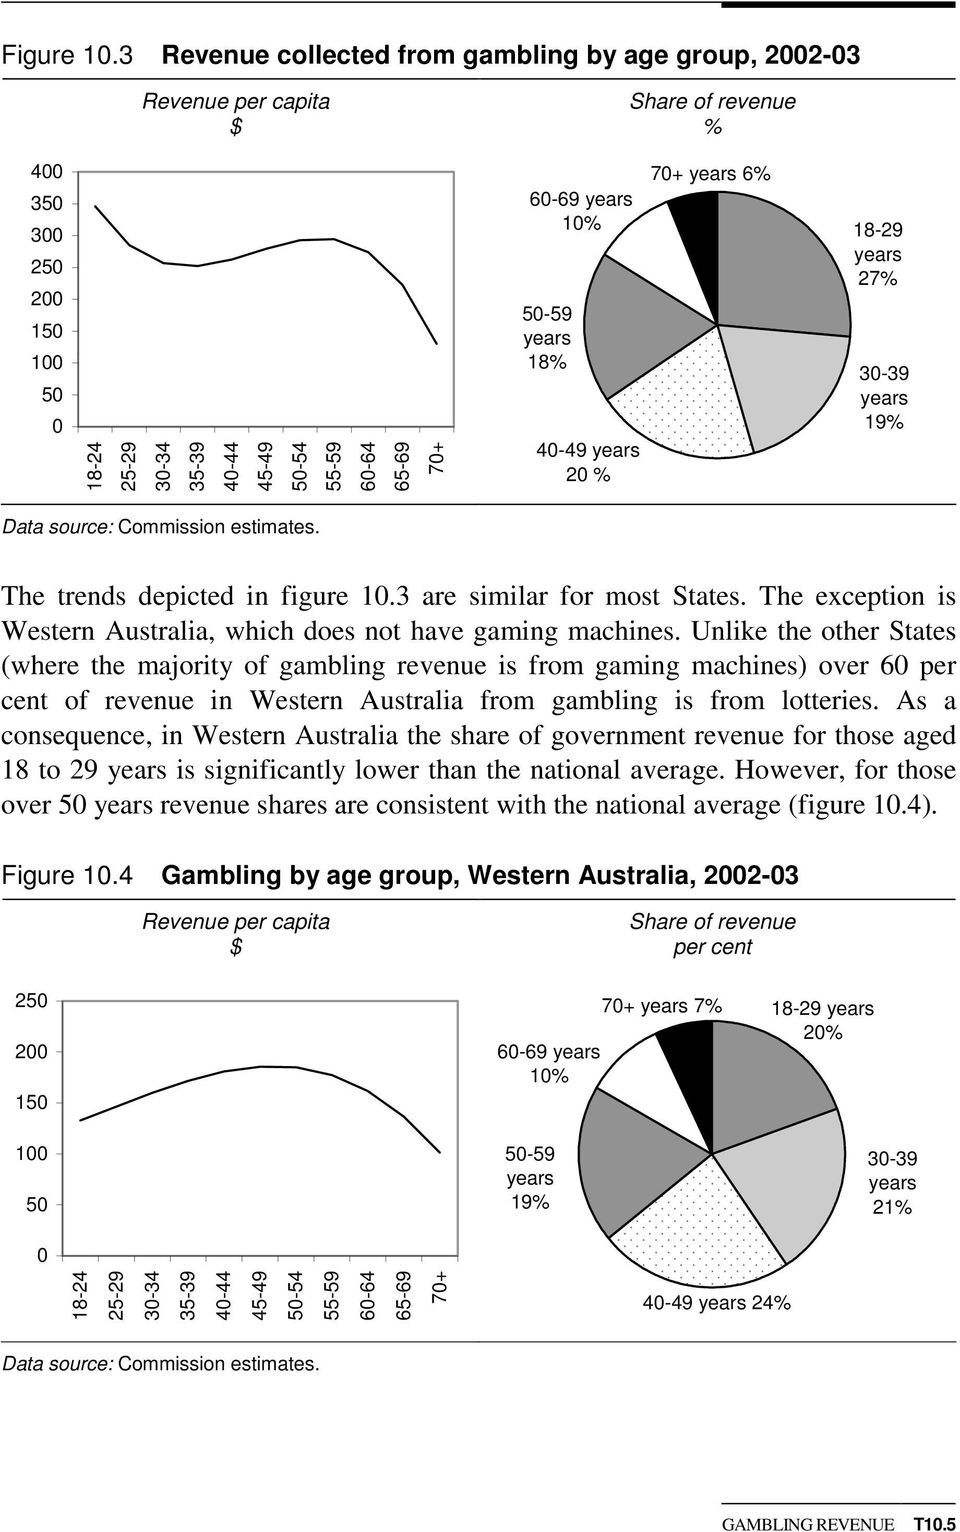 years 27% 3-39 years 19% Data source: Commission estimates. The trends depicted in figure 1.3 are similar for most States. The exception is Western Australia, which does not have gaming machines.